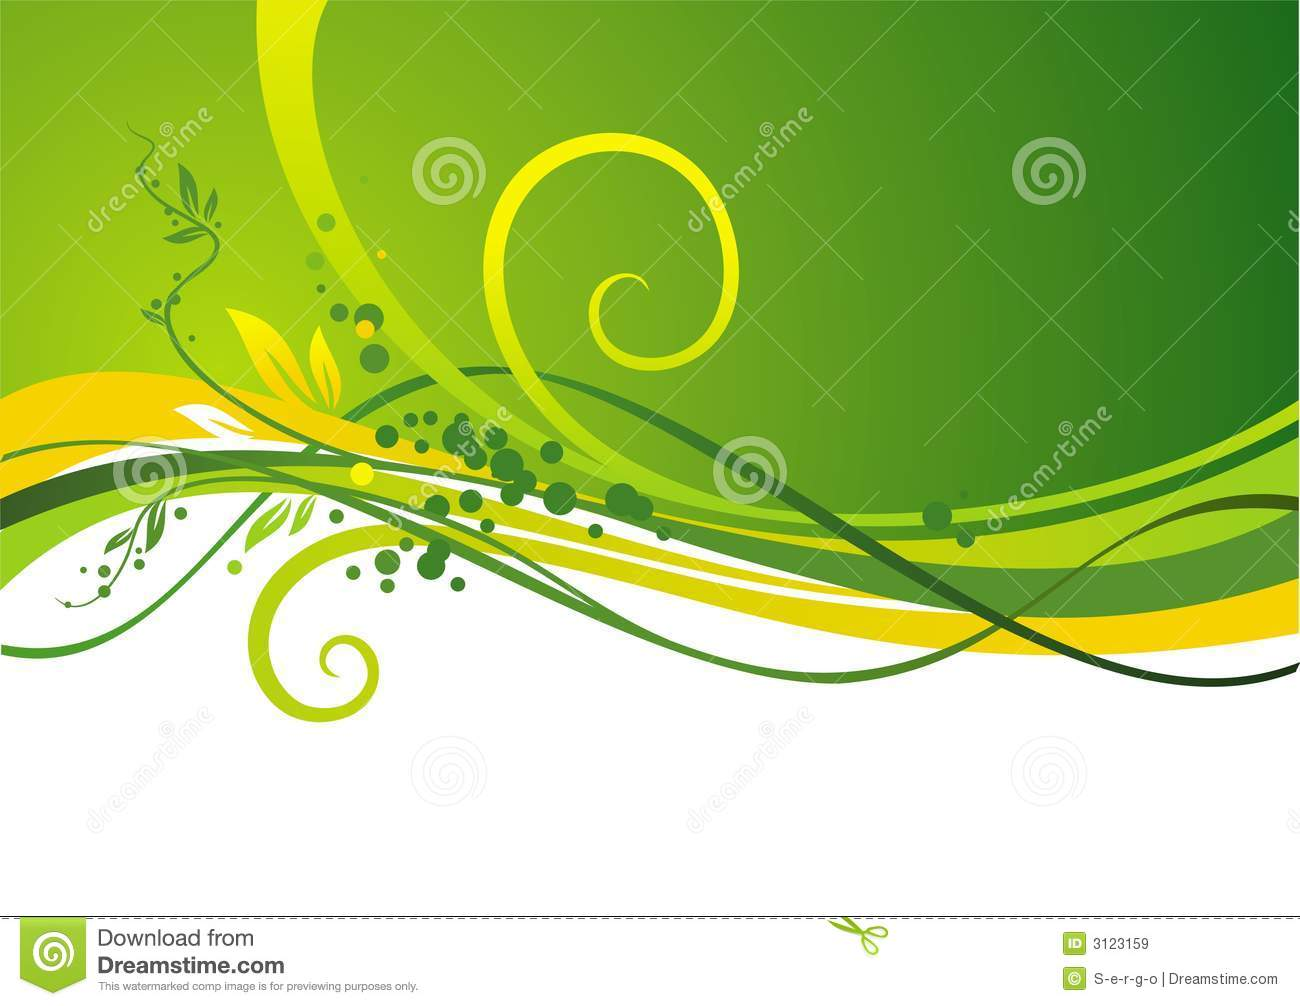 Yellow green design royalty free stock images image 3123159 for Green design